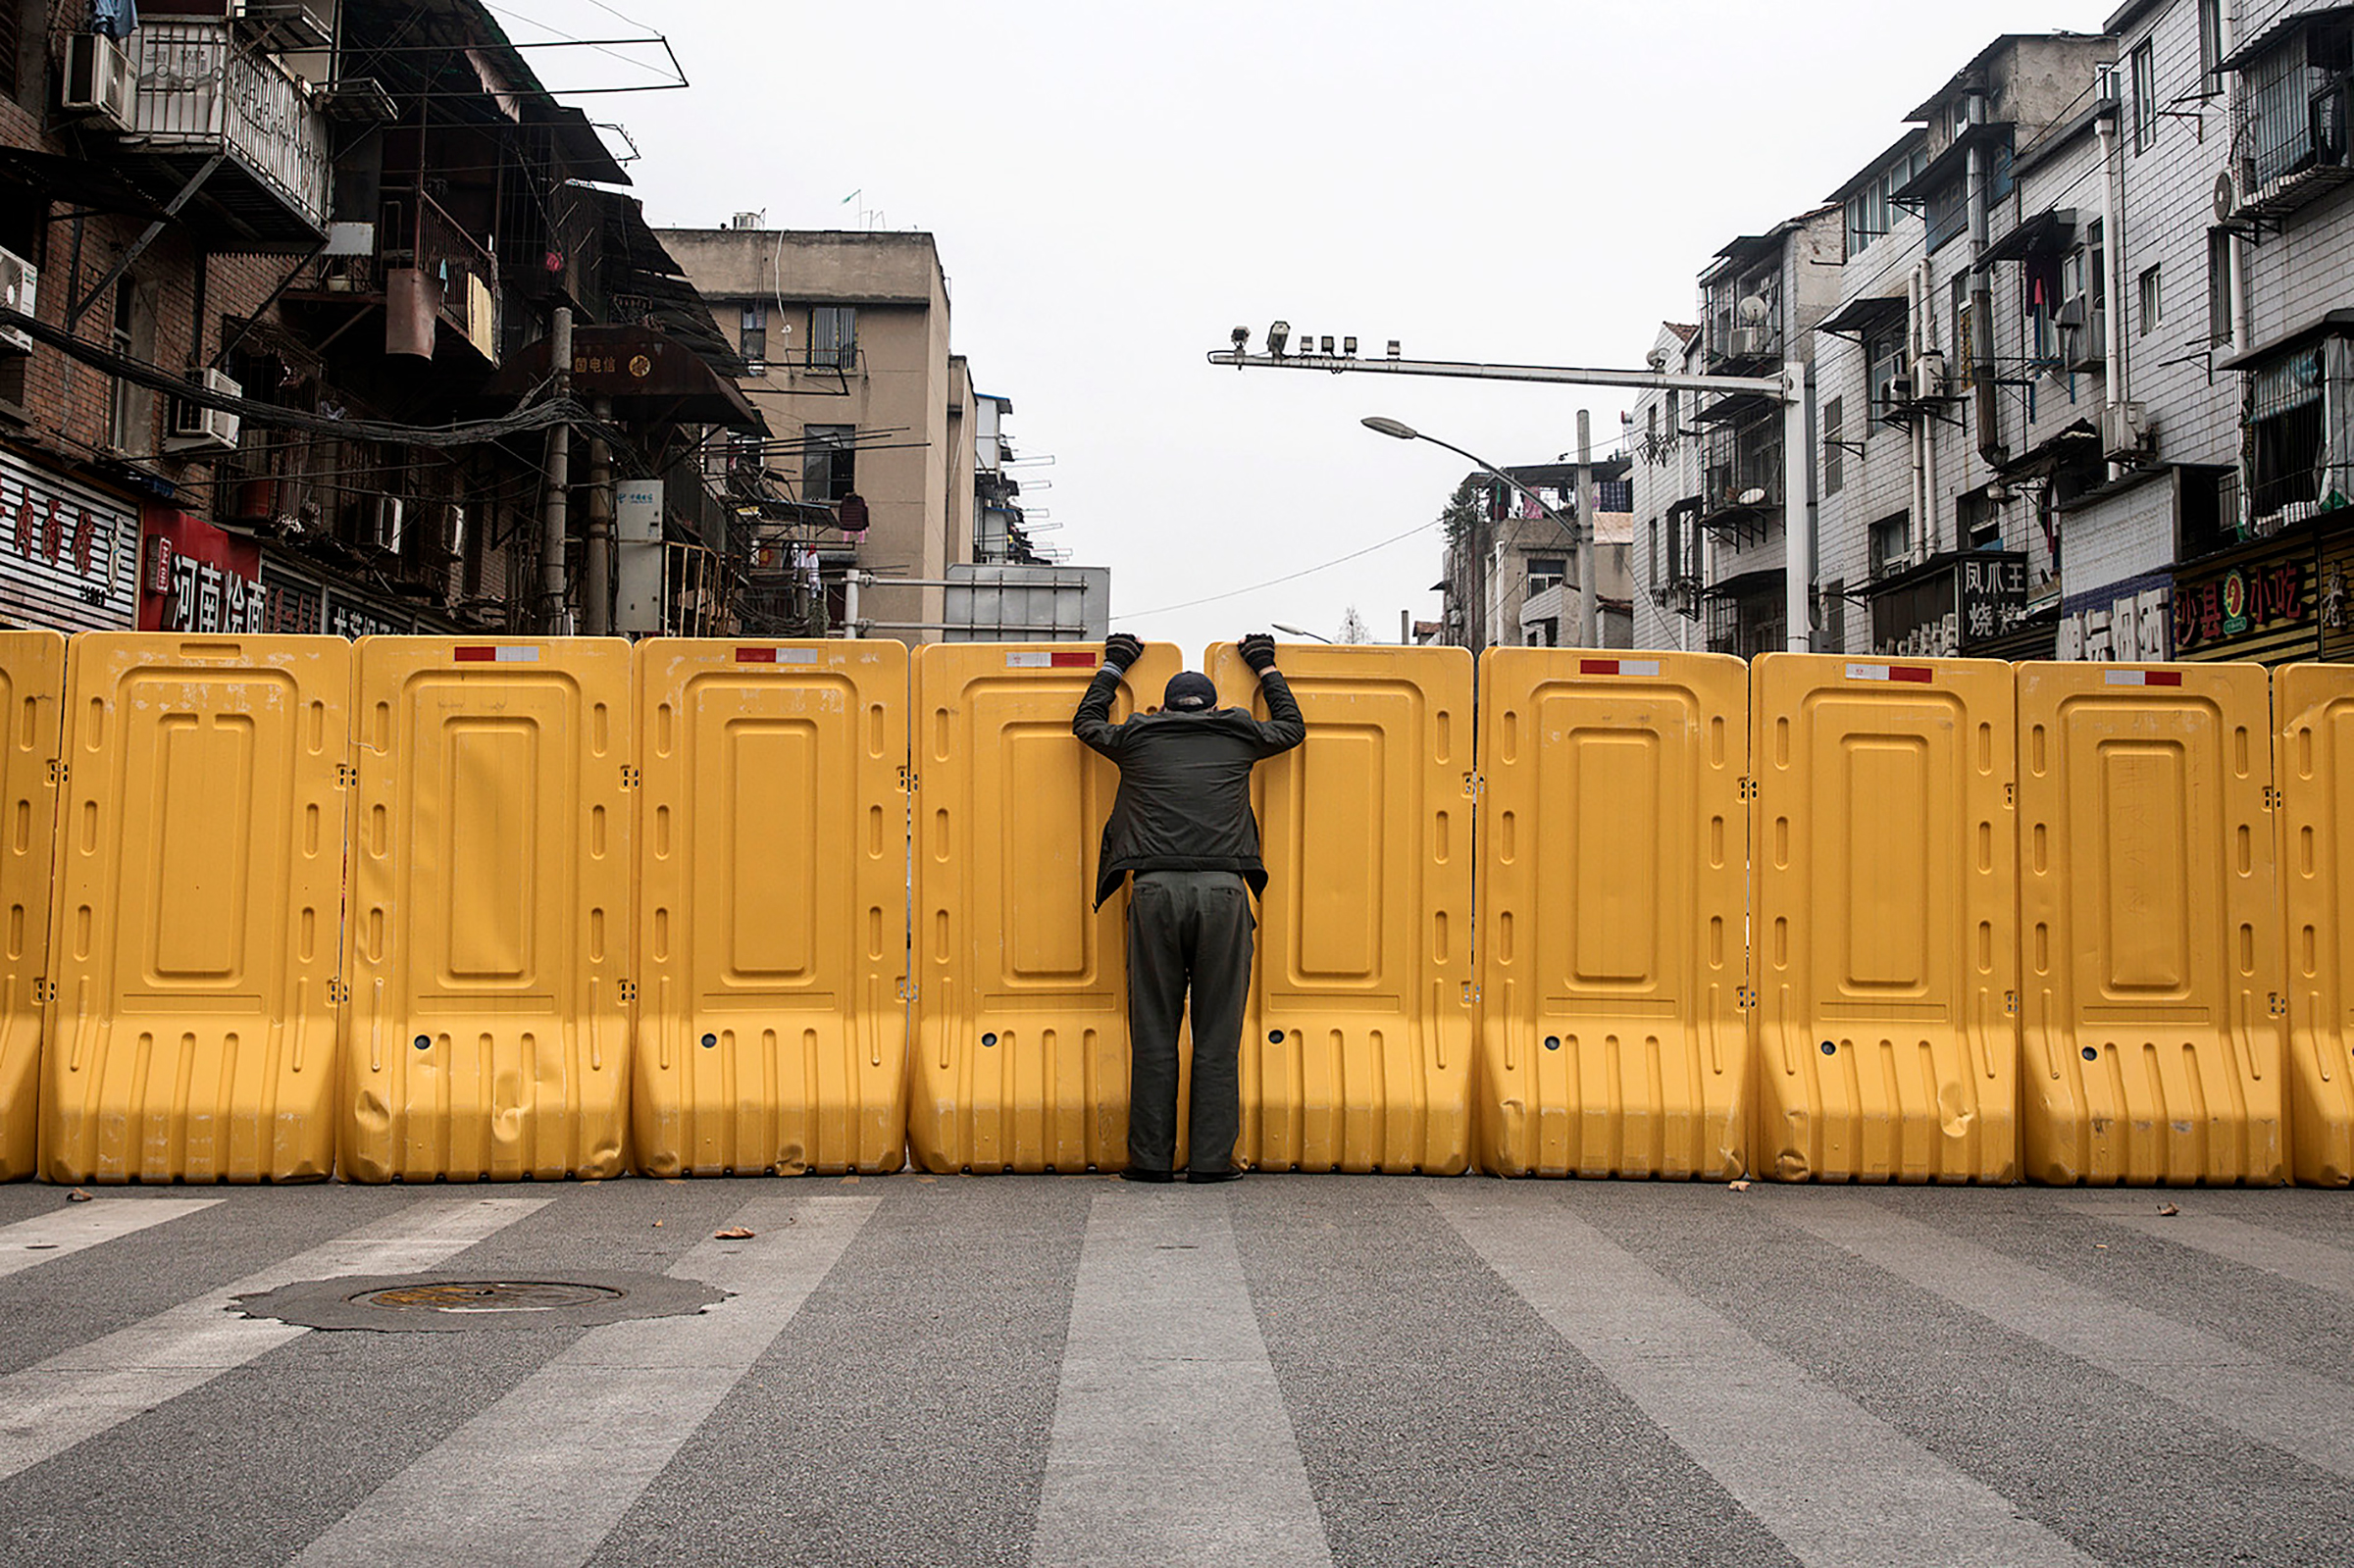 A man talks to another man through a makeshift barricade, built to control entry and exit to a residential compound, in Wuhan, China, on March 8.